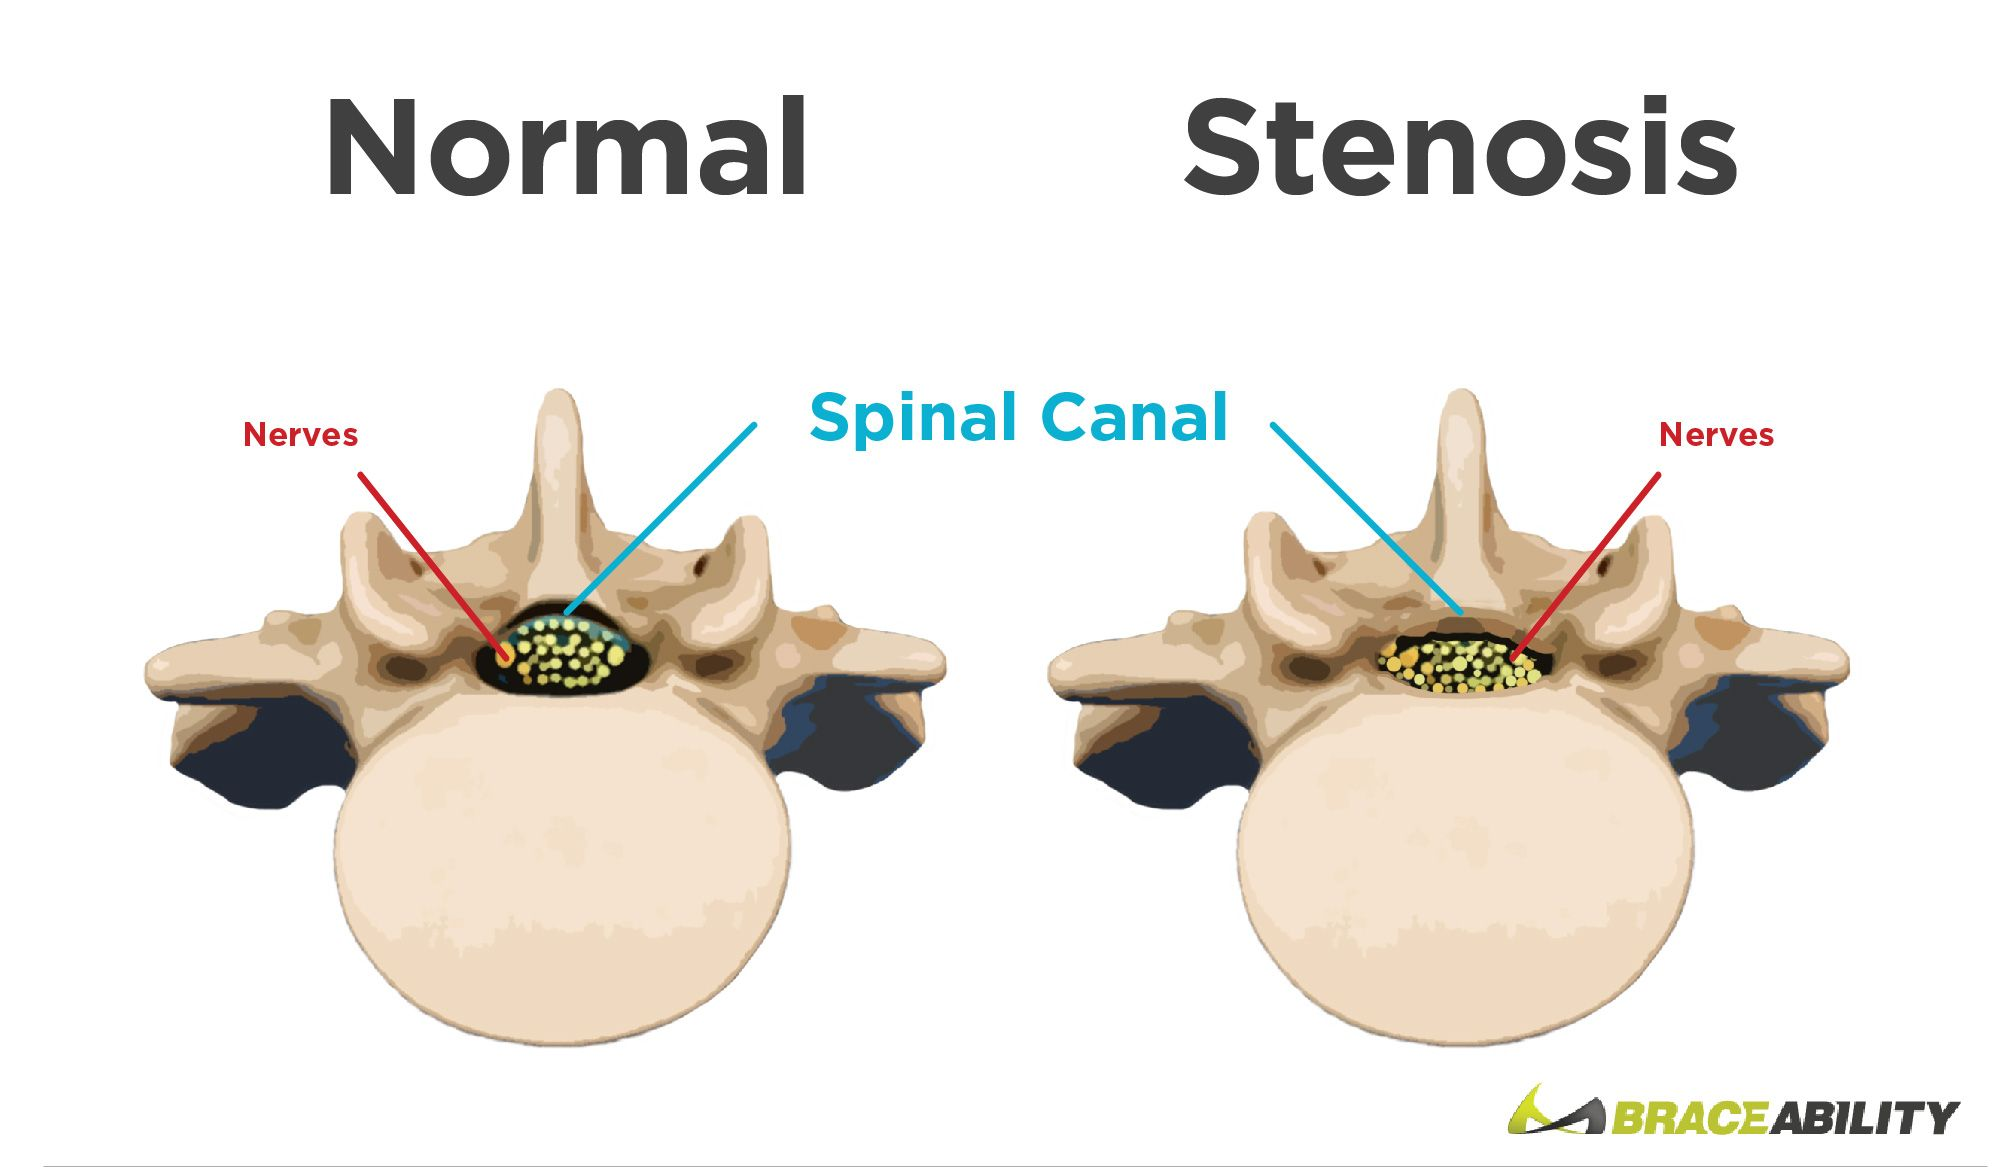 Normal spinal canal vs. spinal stenosis | bakım | Pinterest | Spinal ...